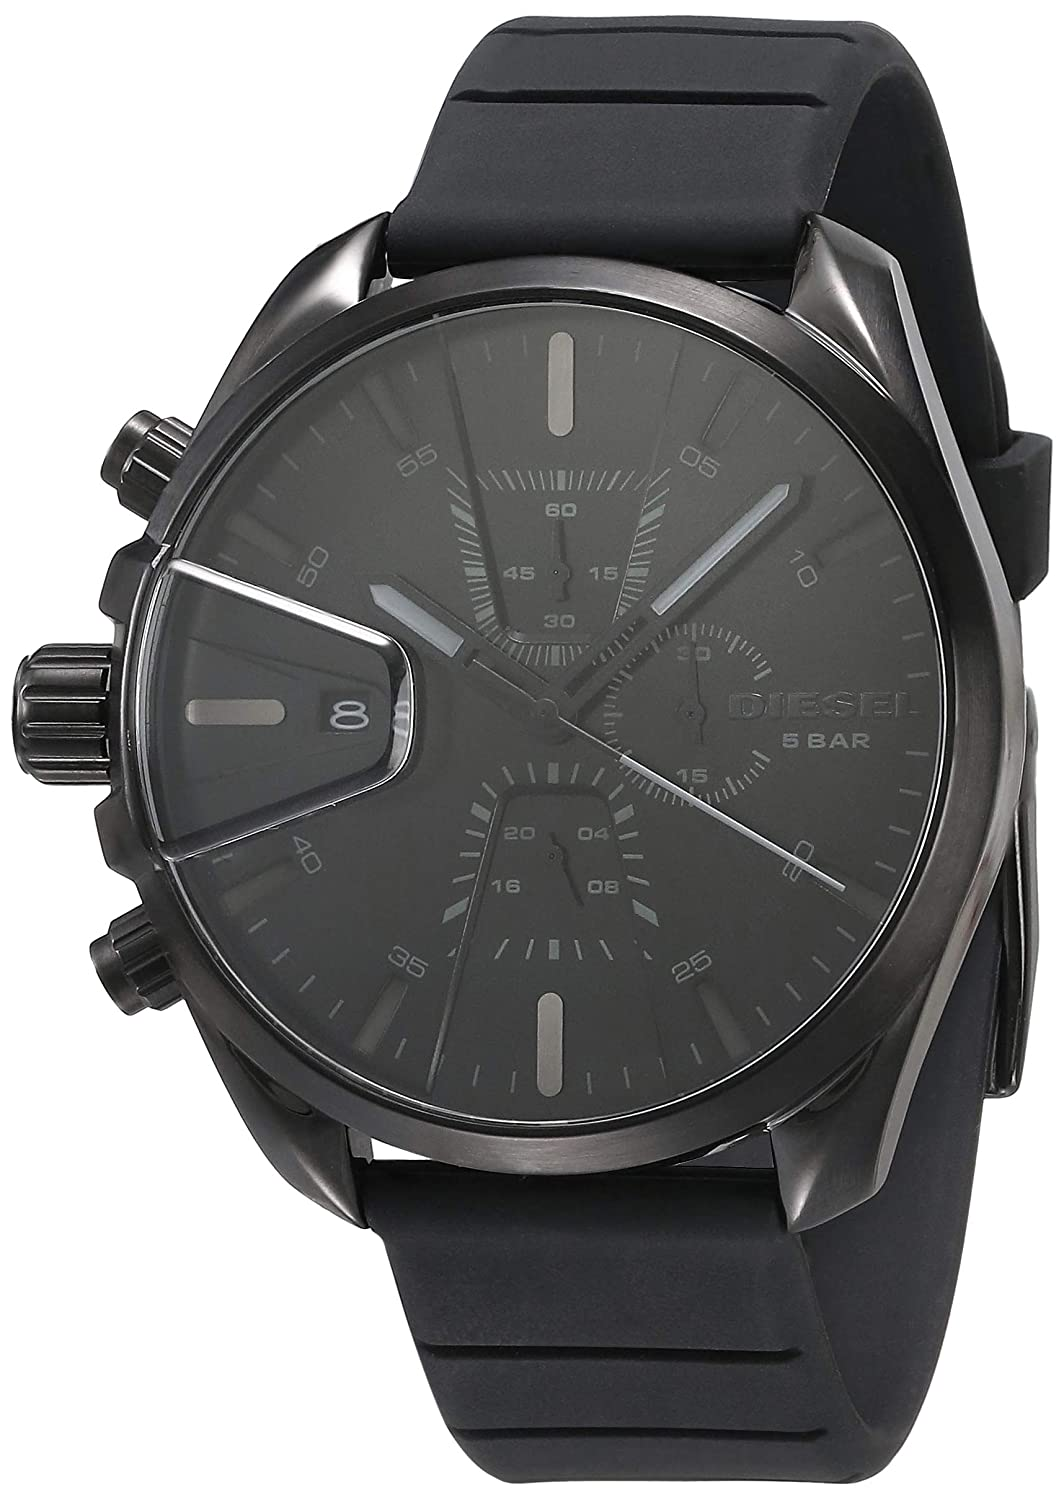 Diesel Ms9 Chrono Analog Black Dial Men's Watch-DZ4507